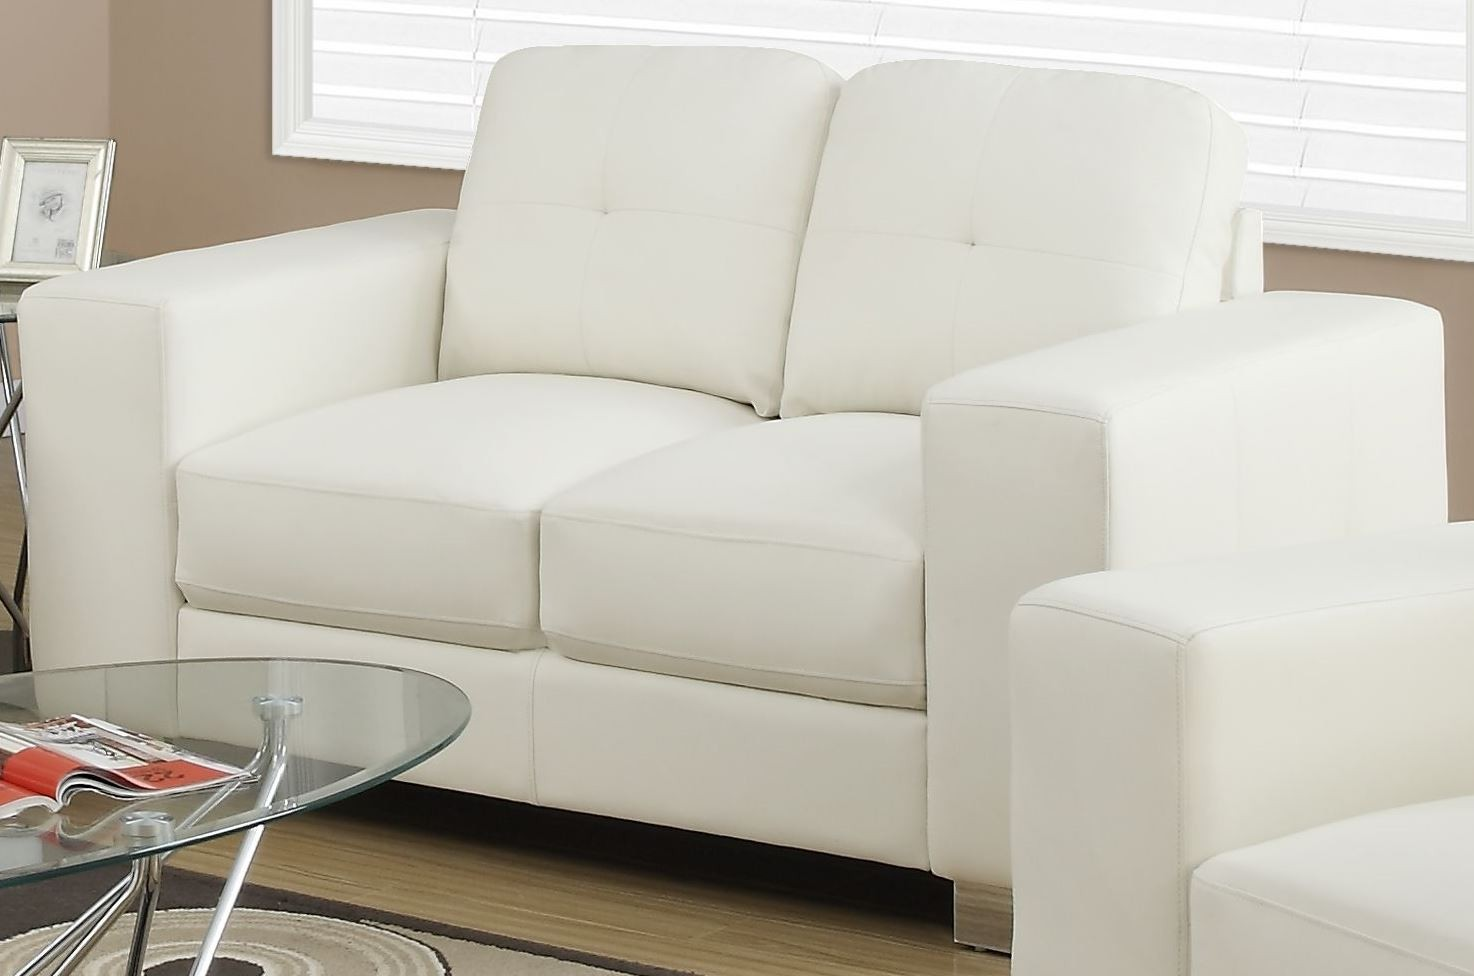 Ivory Bonded Leather Upholstery Loveseat From Monarch Coleman Furniture